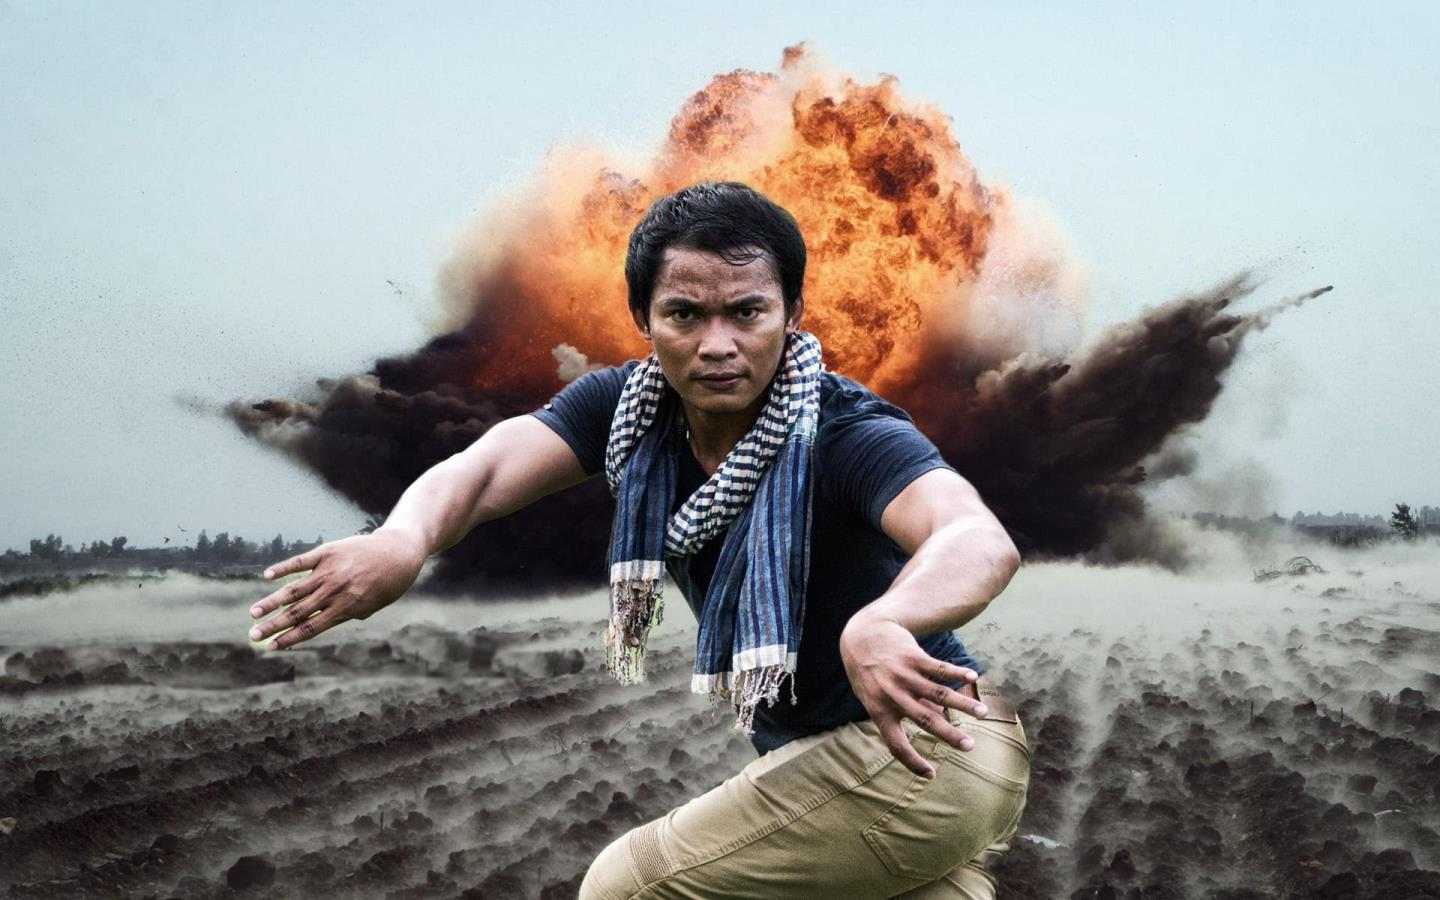 Jaa Ideal 5 things you don't know about tony jaa (probably)